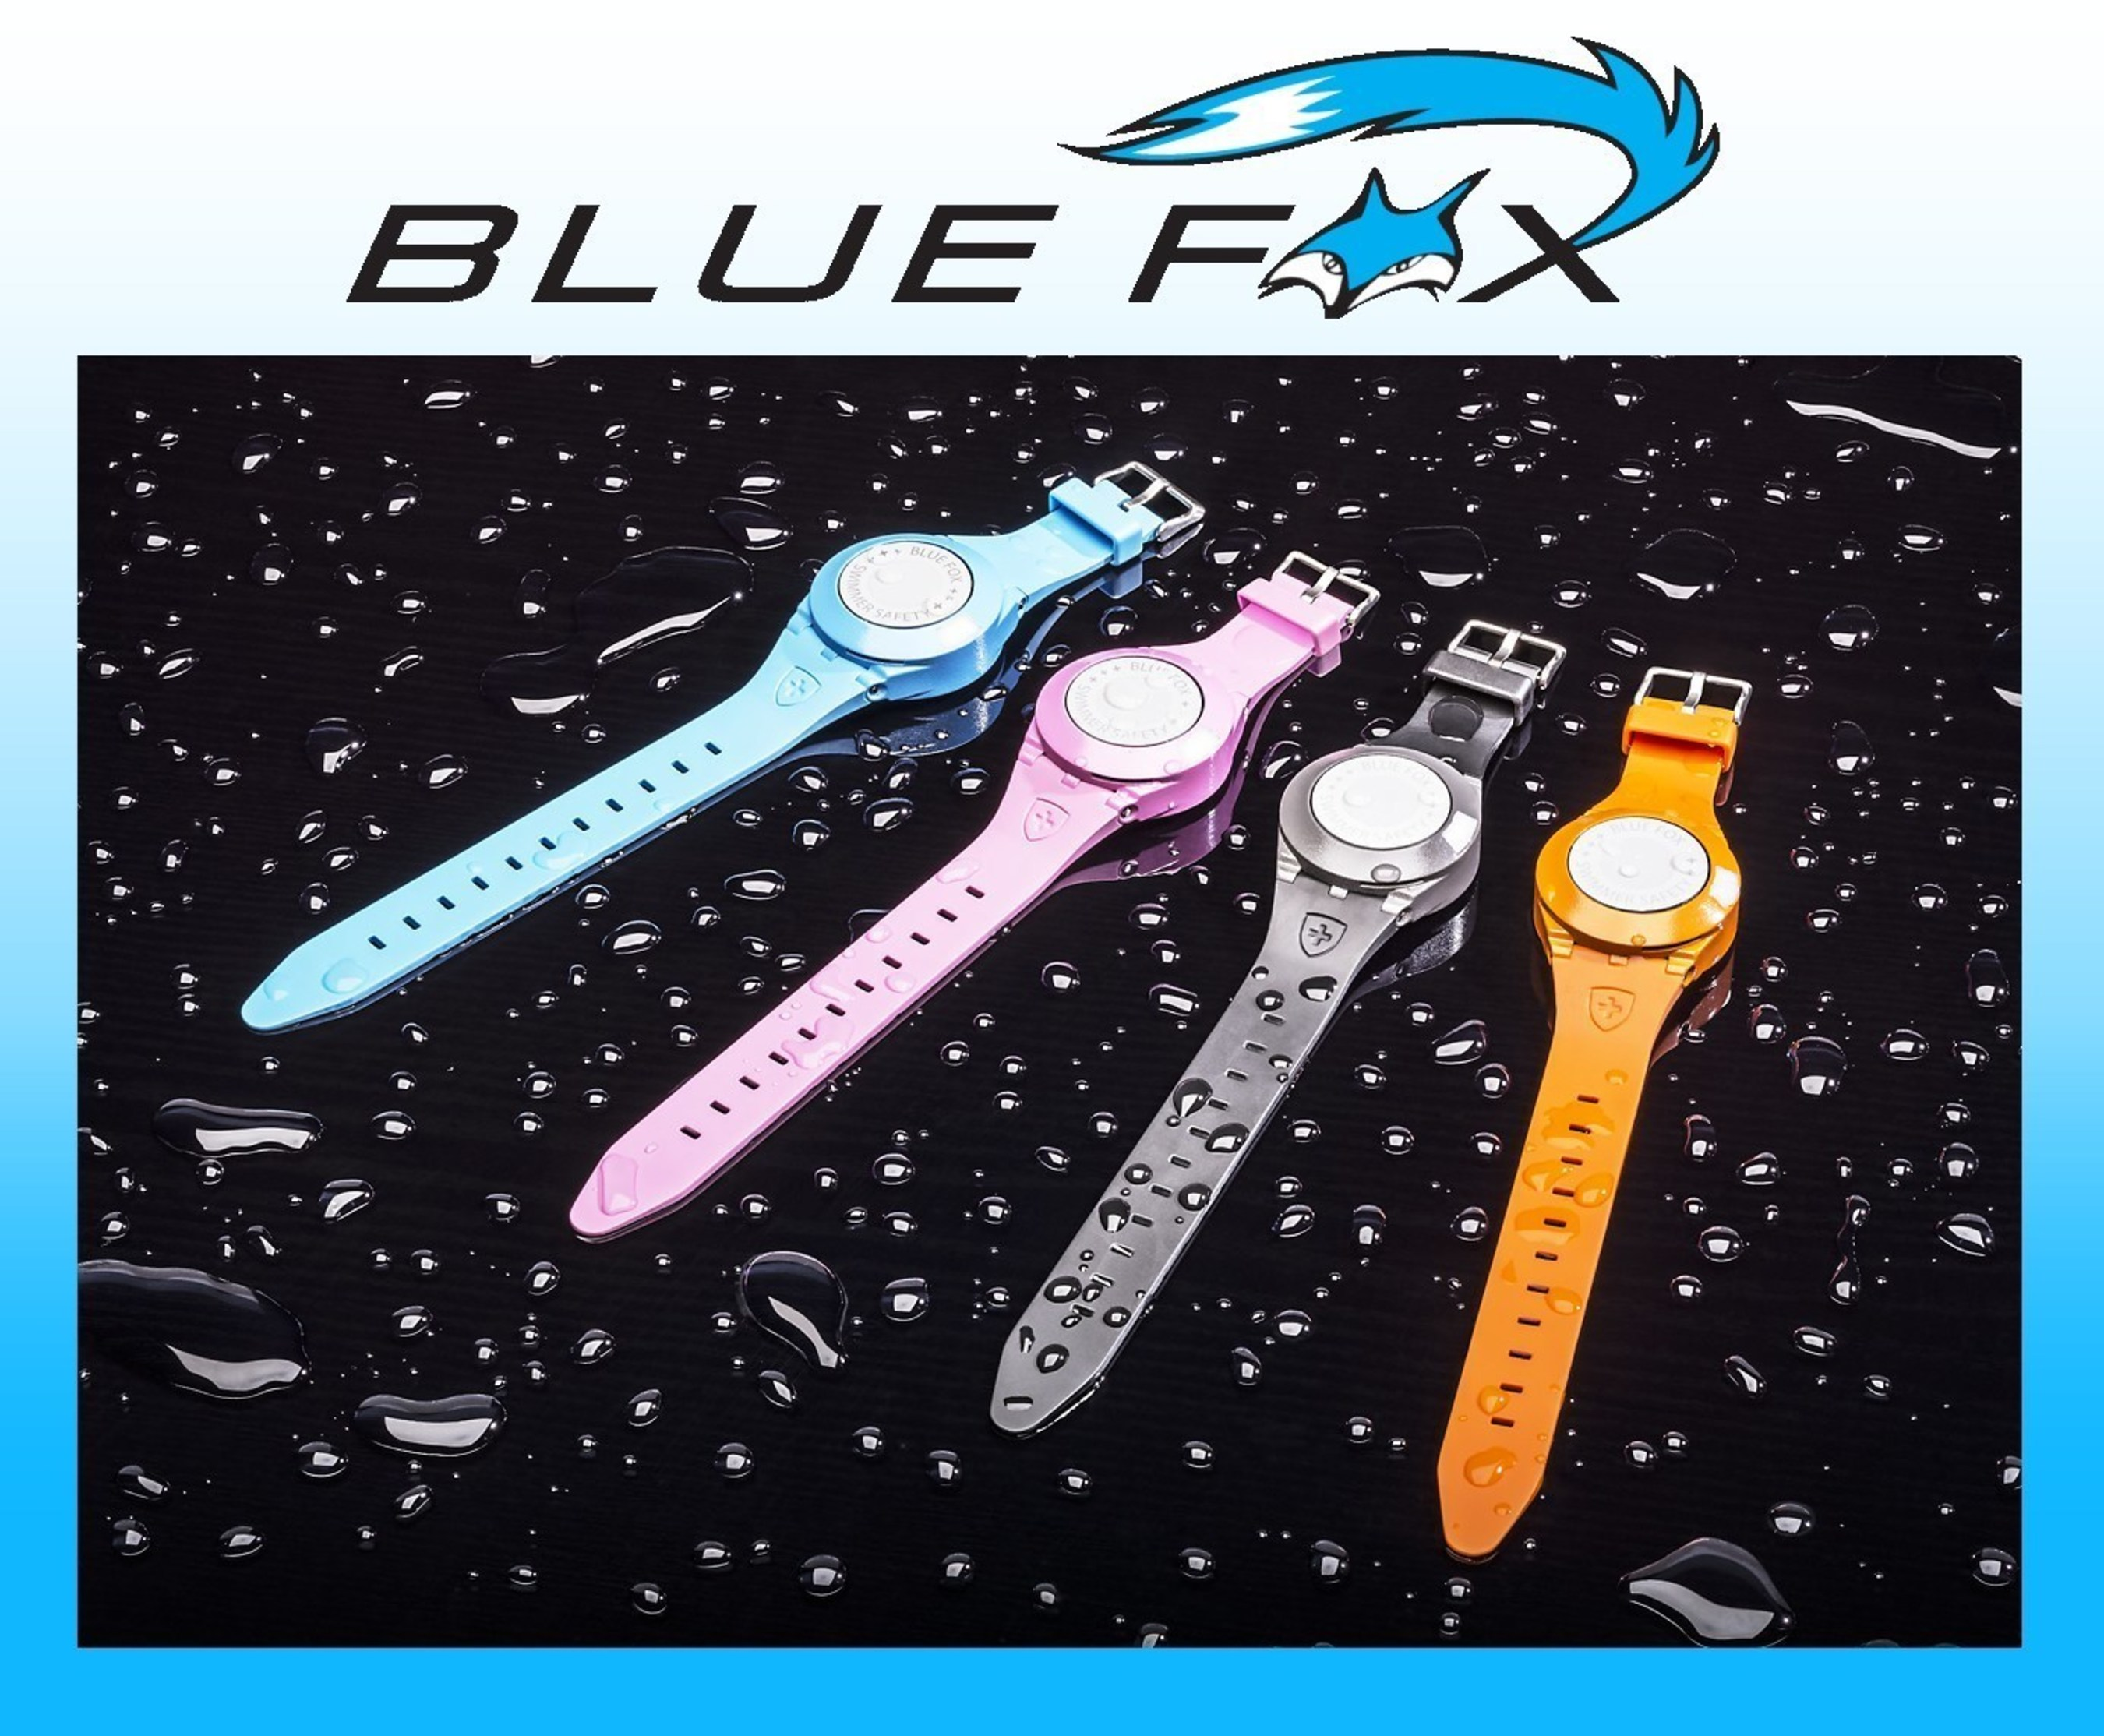 BlueFox Launches the World's First Anti-Drowning Bracelet